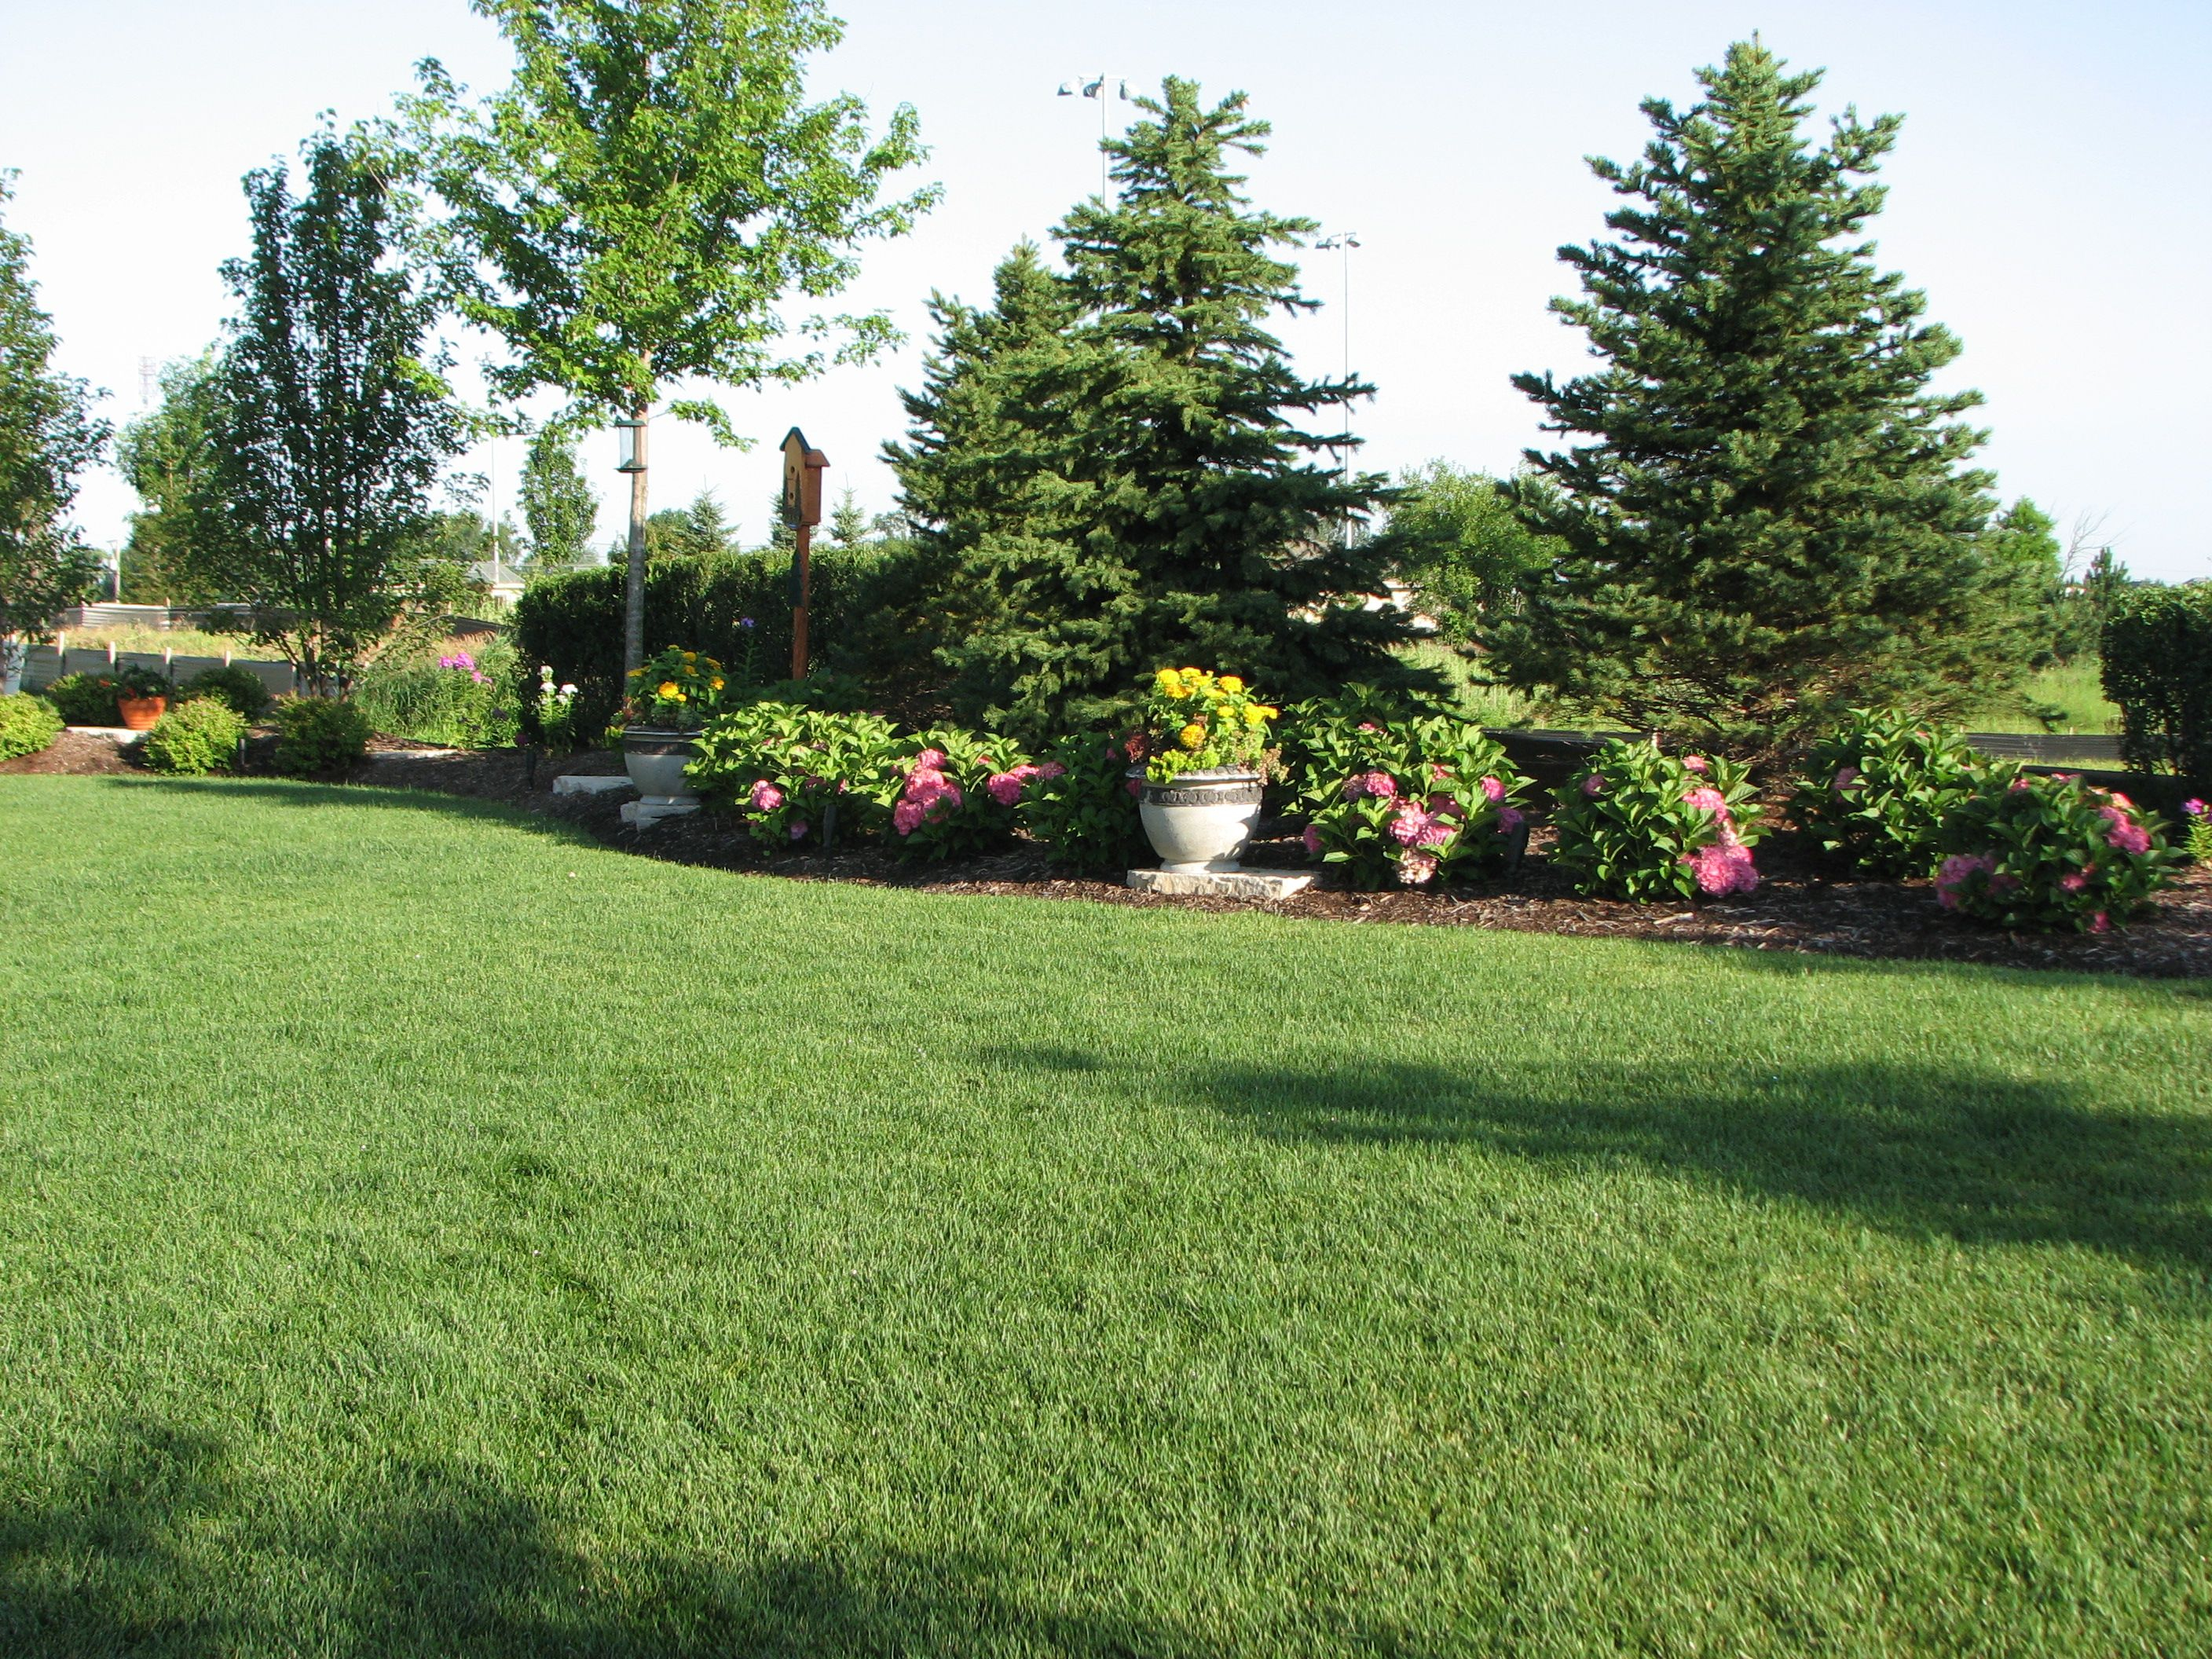 Backyard Landscaping For Privacy Existing Home Landscaping intended for Backyard Landscaping Ideas For Privacy